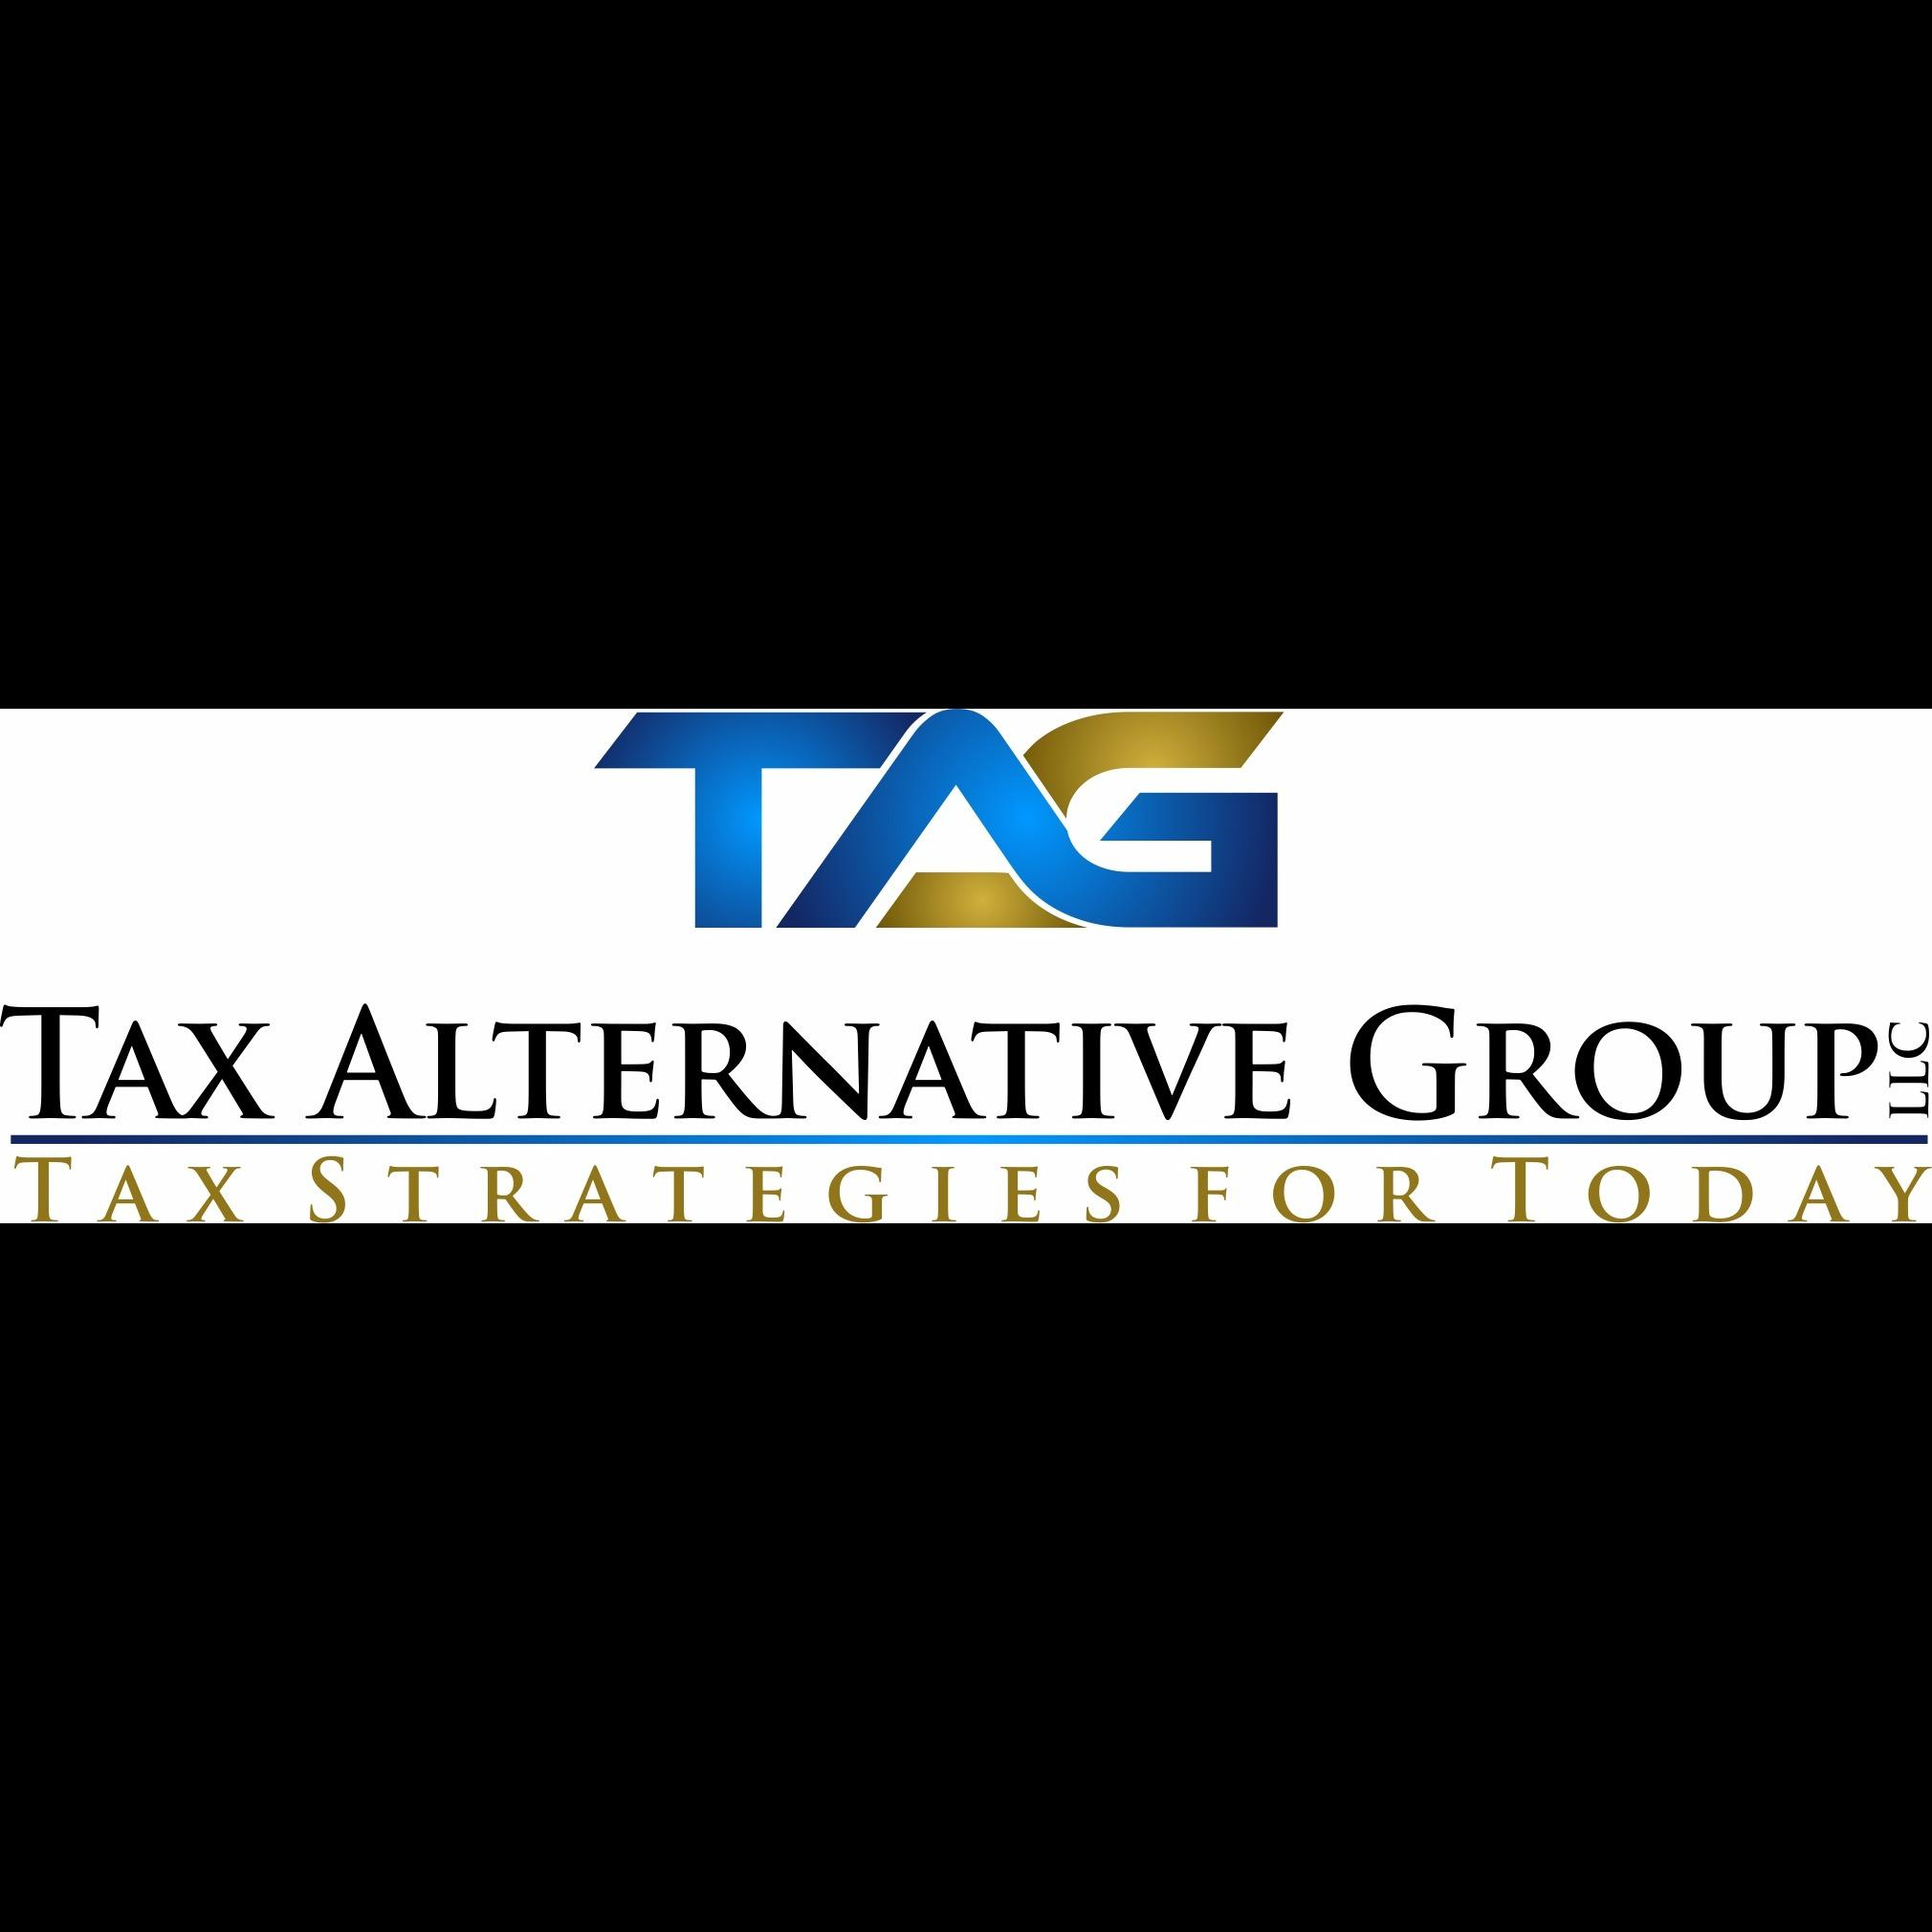 Tax Alternative Group -- Tax Strategies for Today!